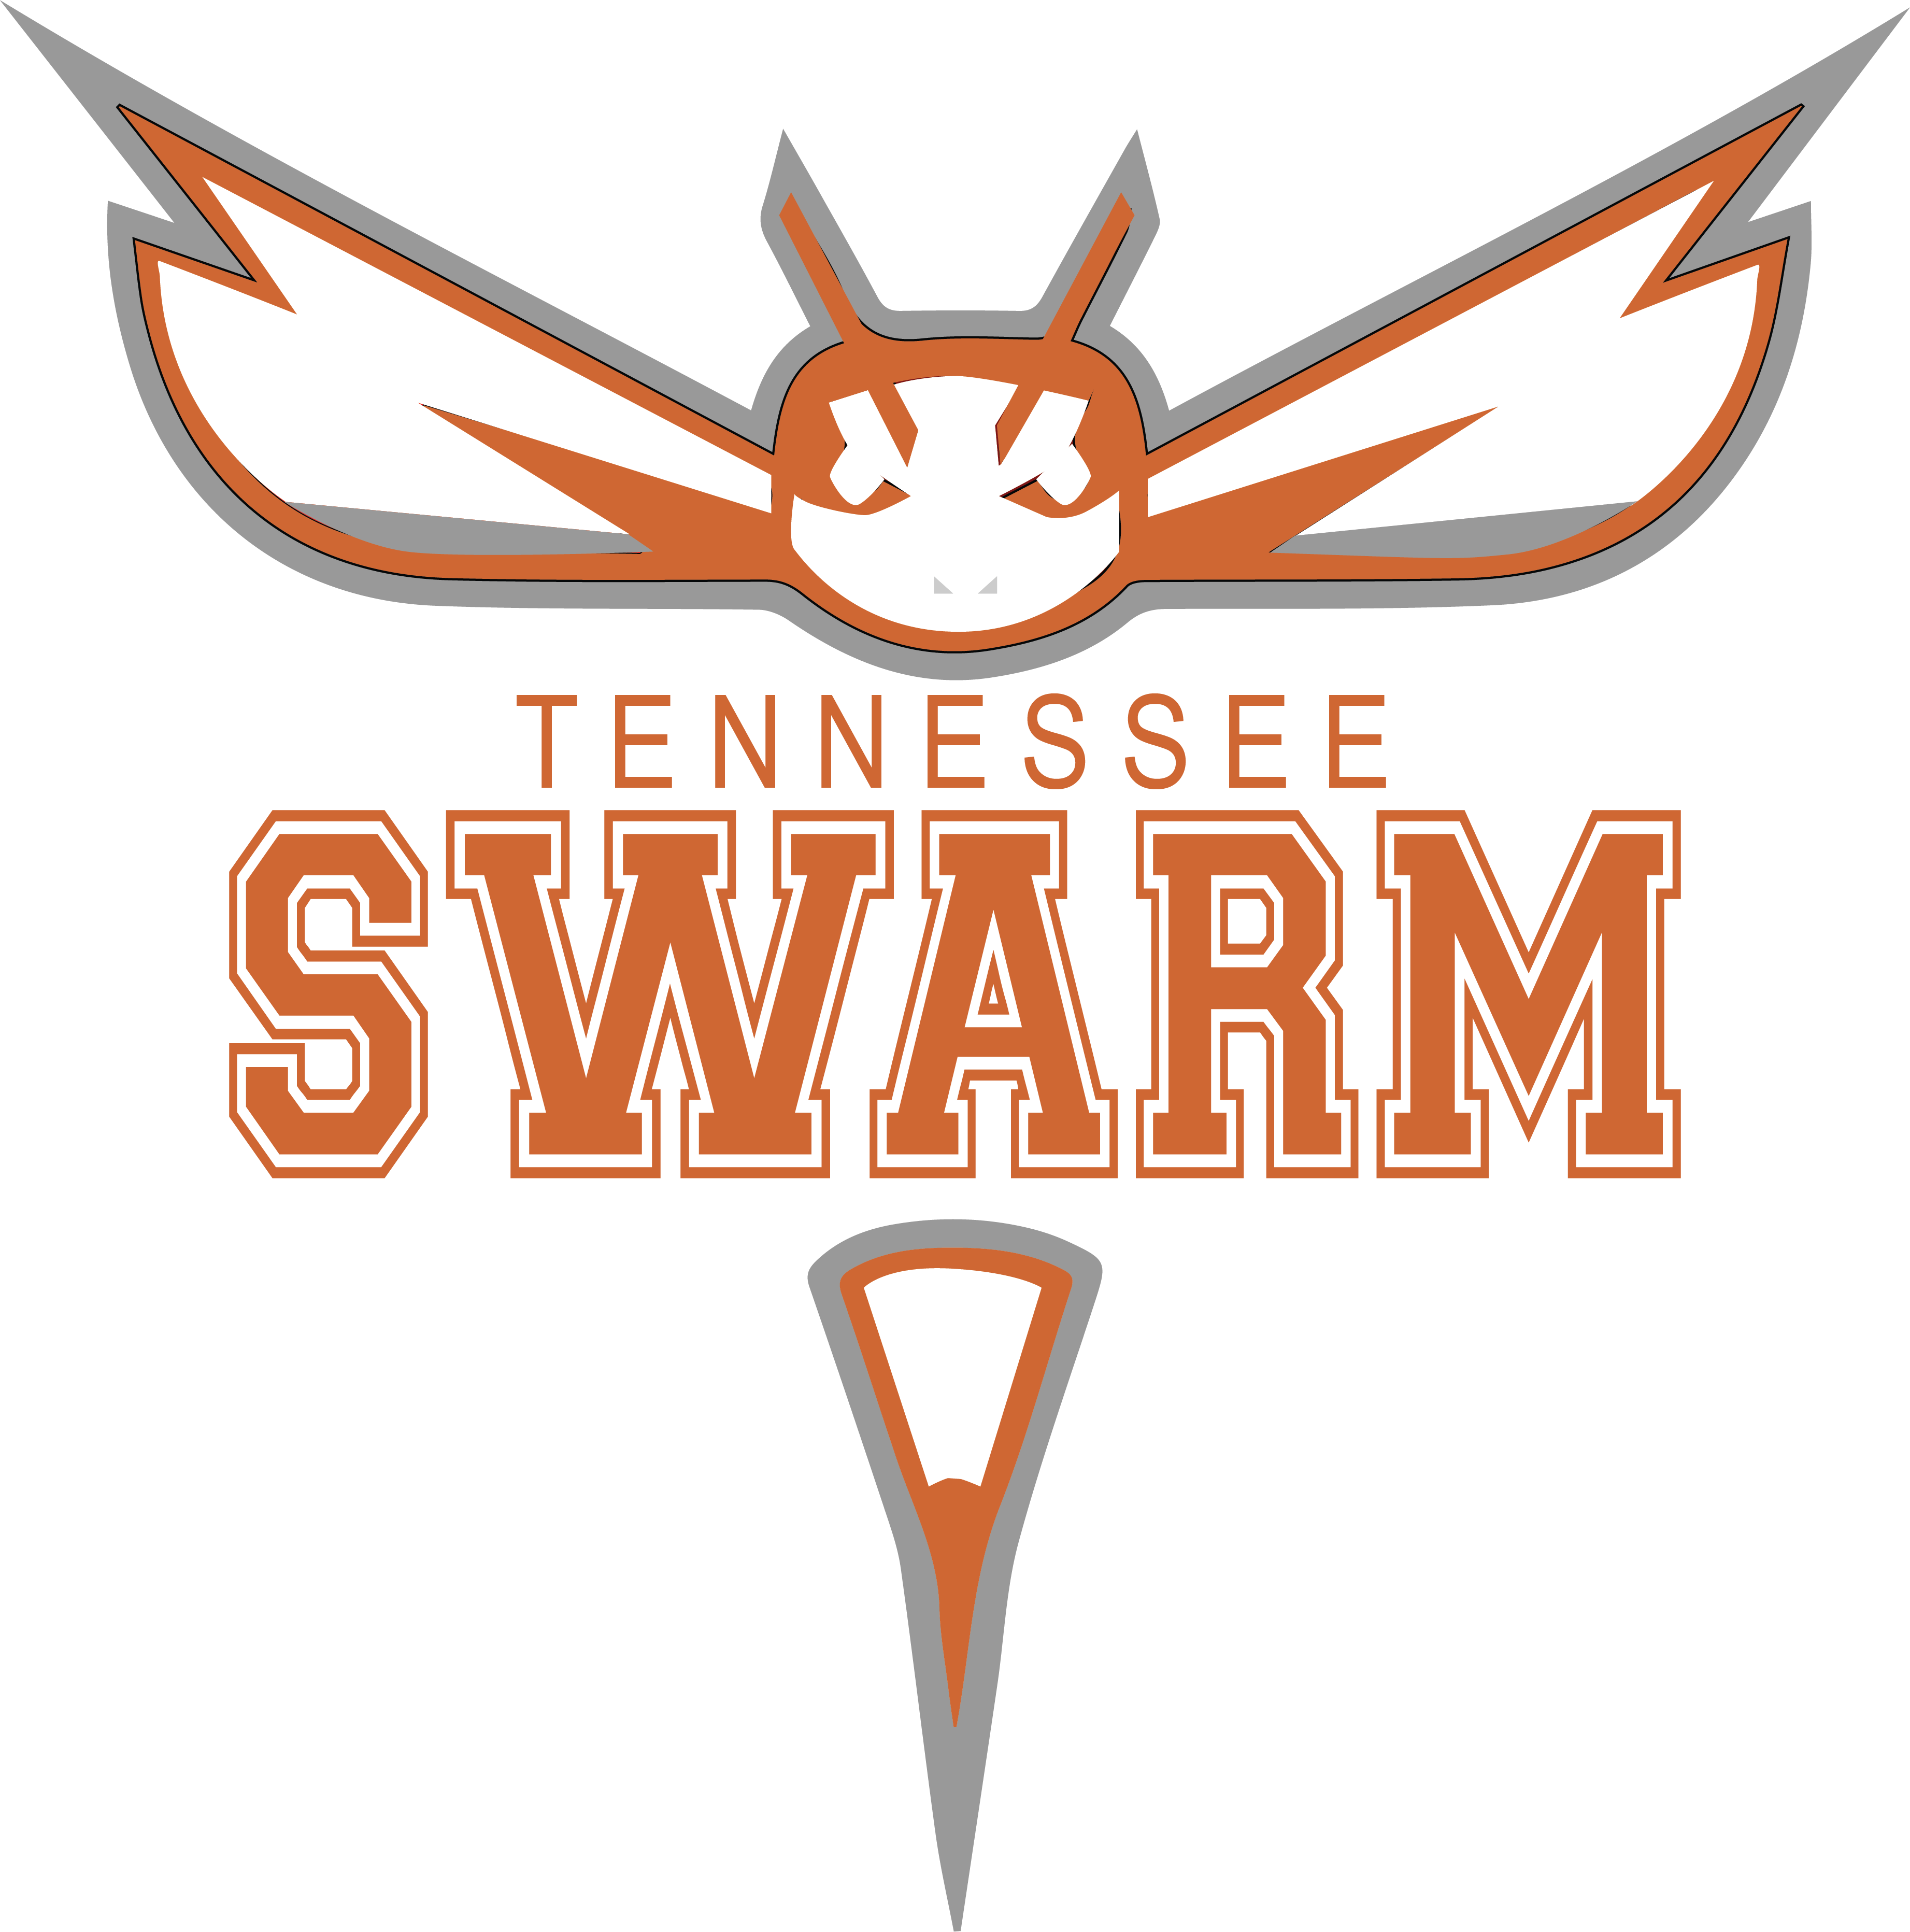 SWARM_TENNESSEE (1)